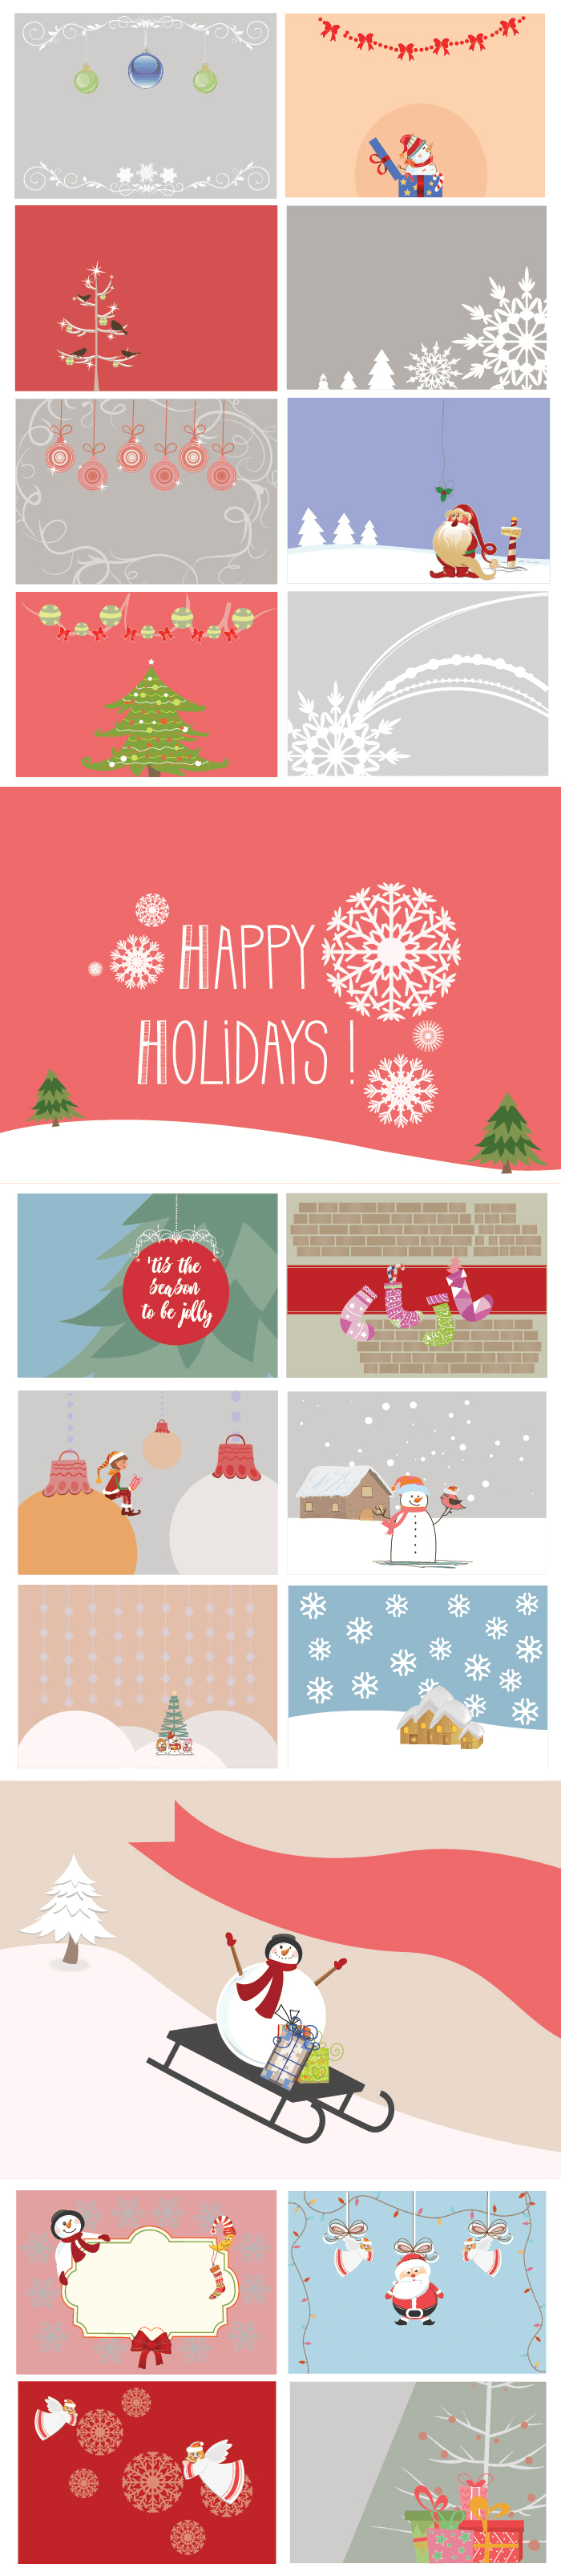 Multicolored backgrounds with large snowflakes and santa claus.